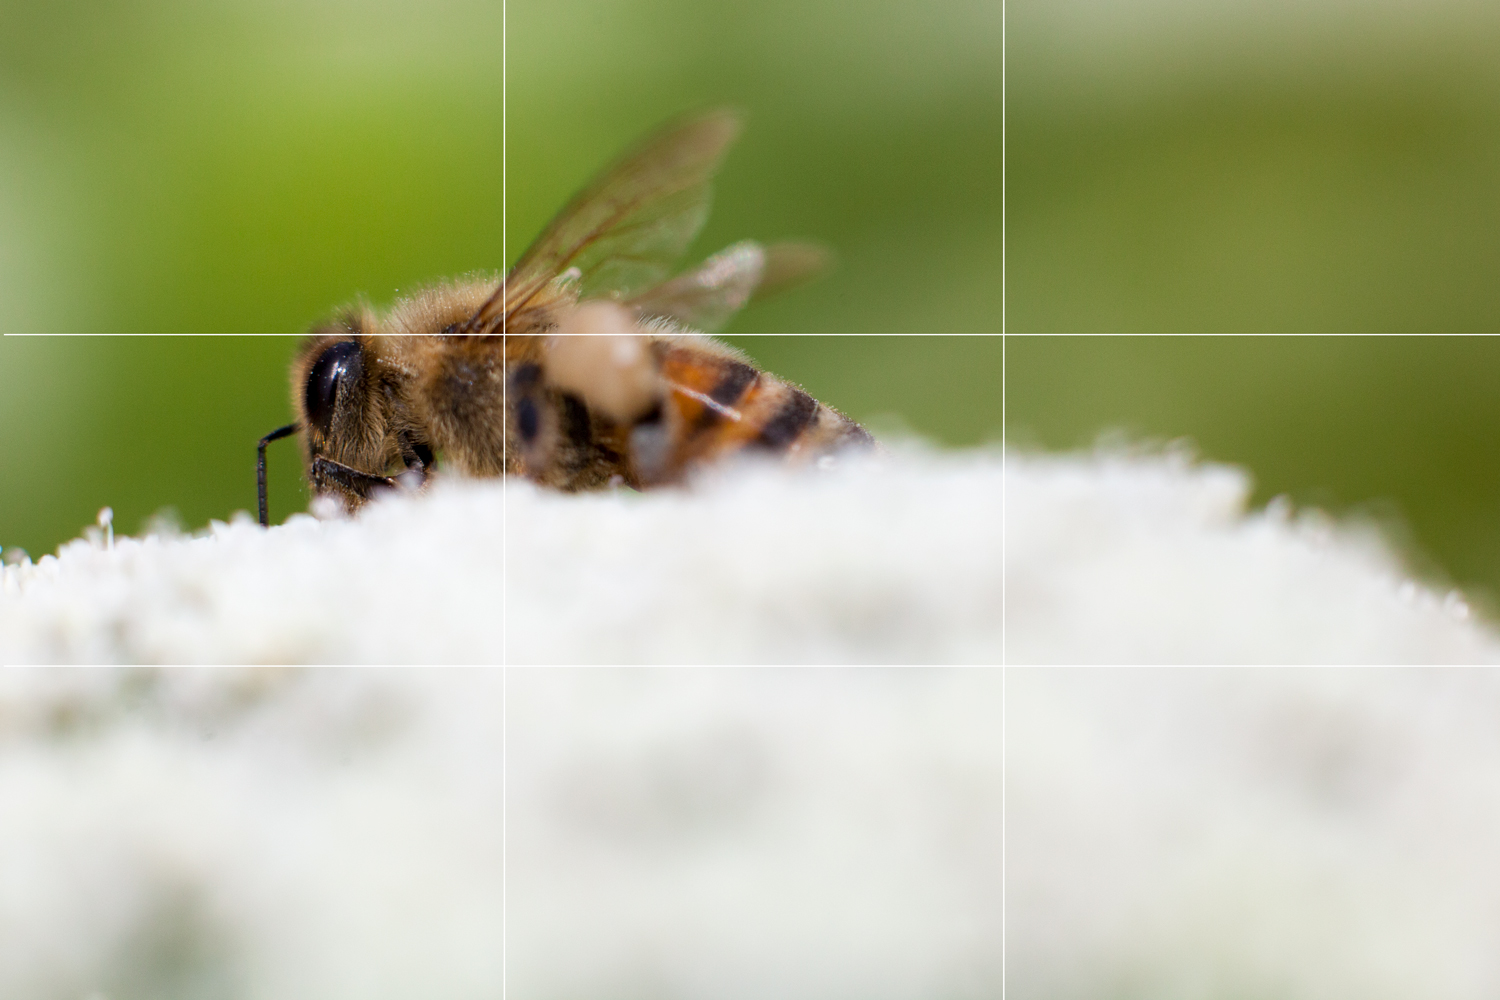 Rule of thirds example - a bee on a flower